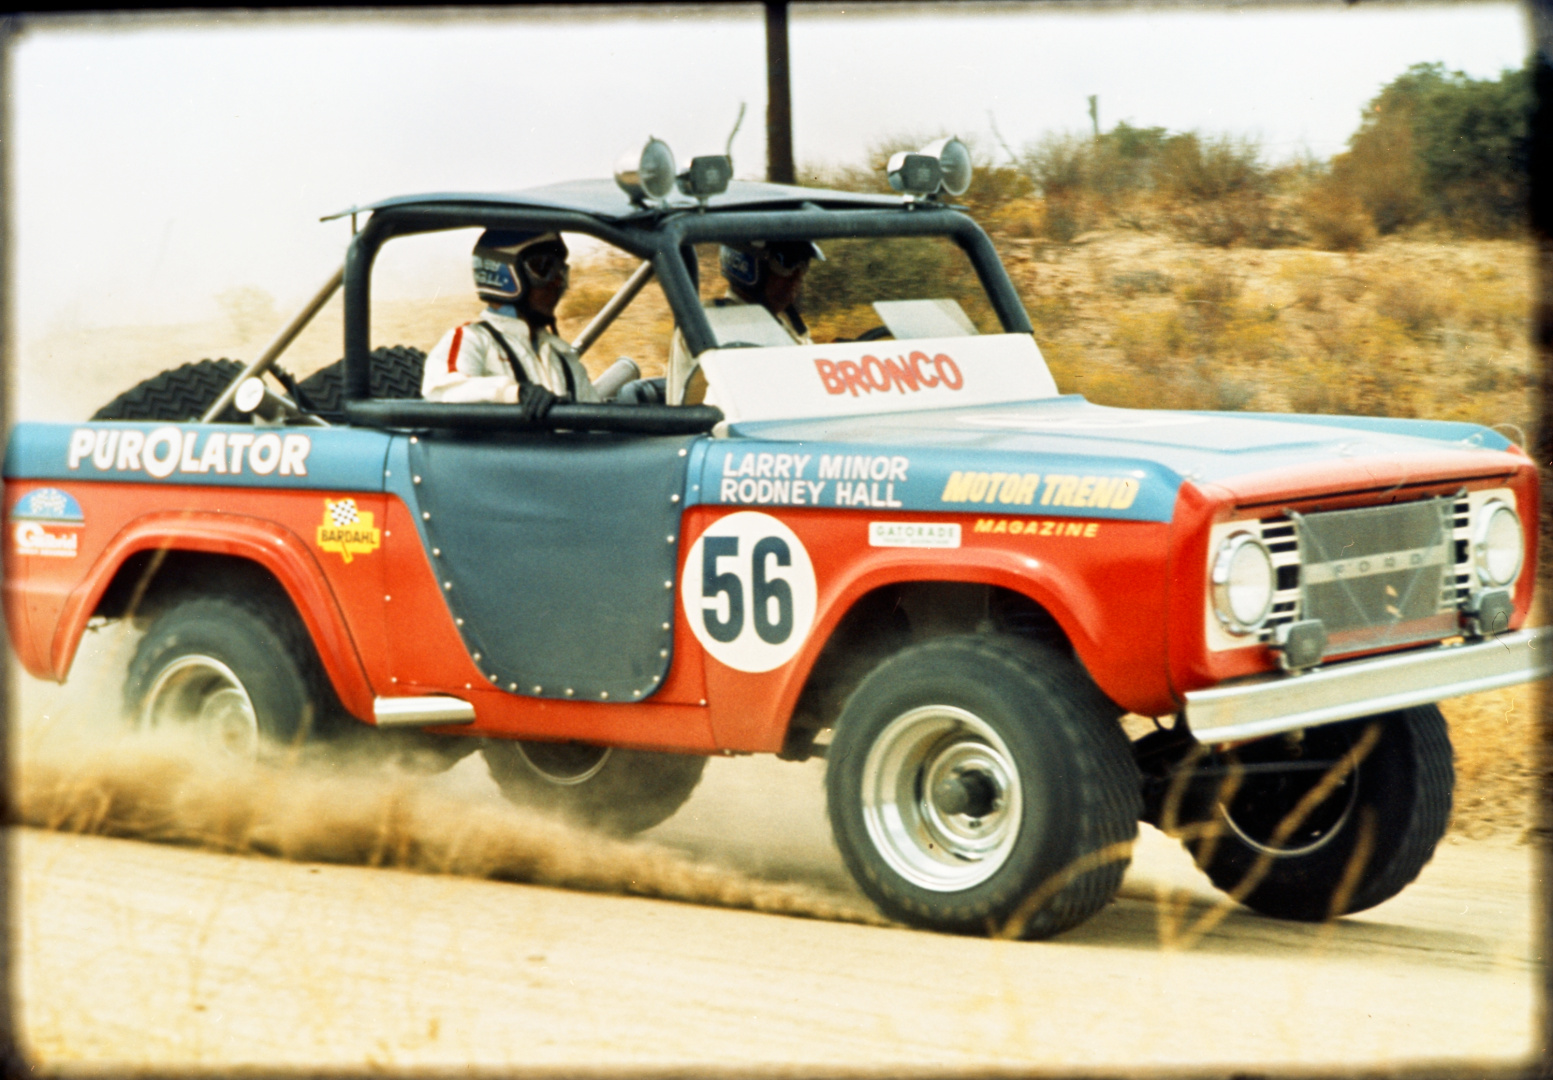 SMALL_1969 Ford Bronco NORRA Baja 1000 Larry Minor Rod Hall CN5877-014